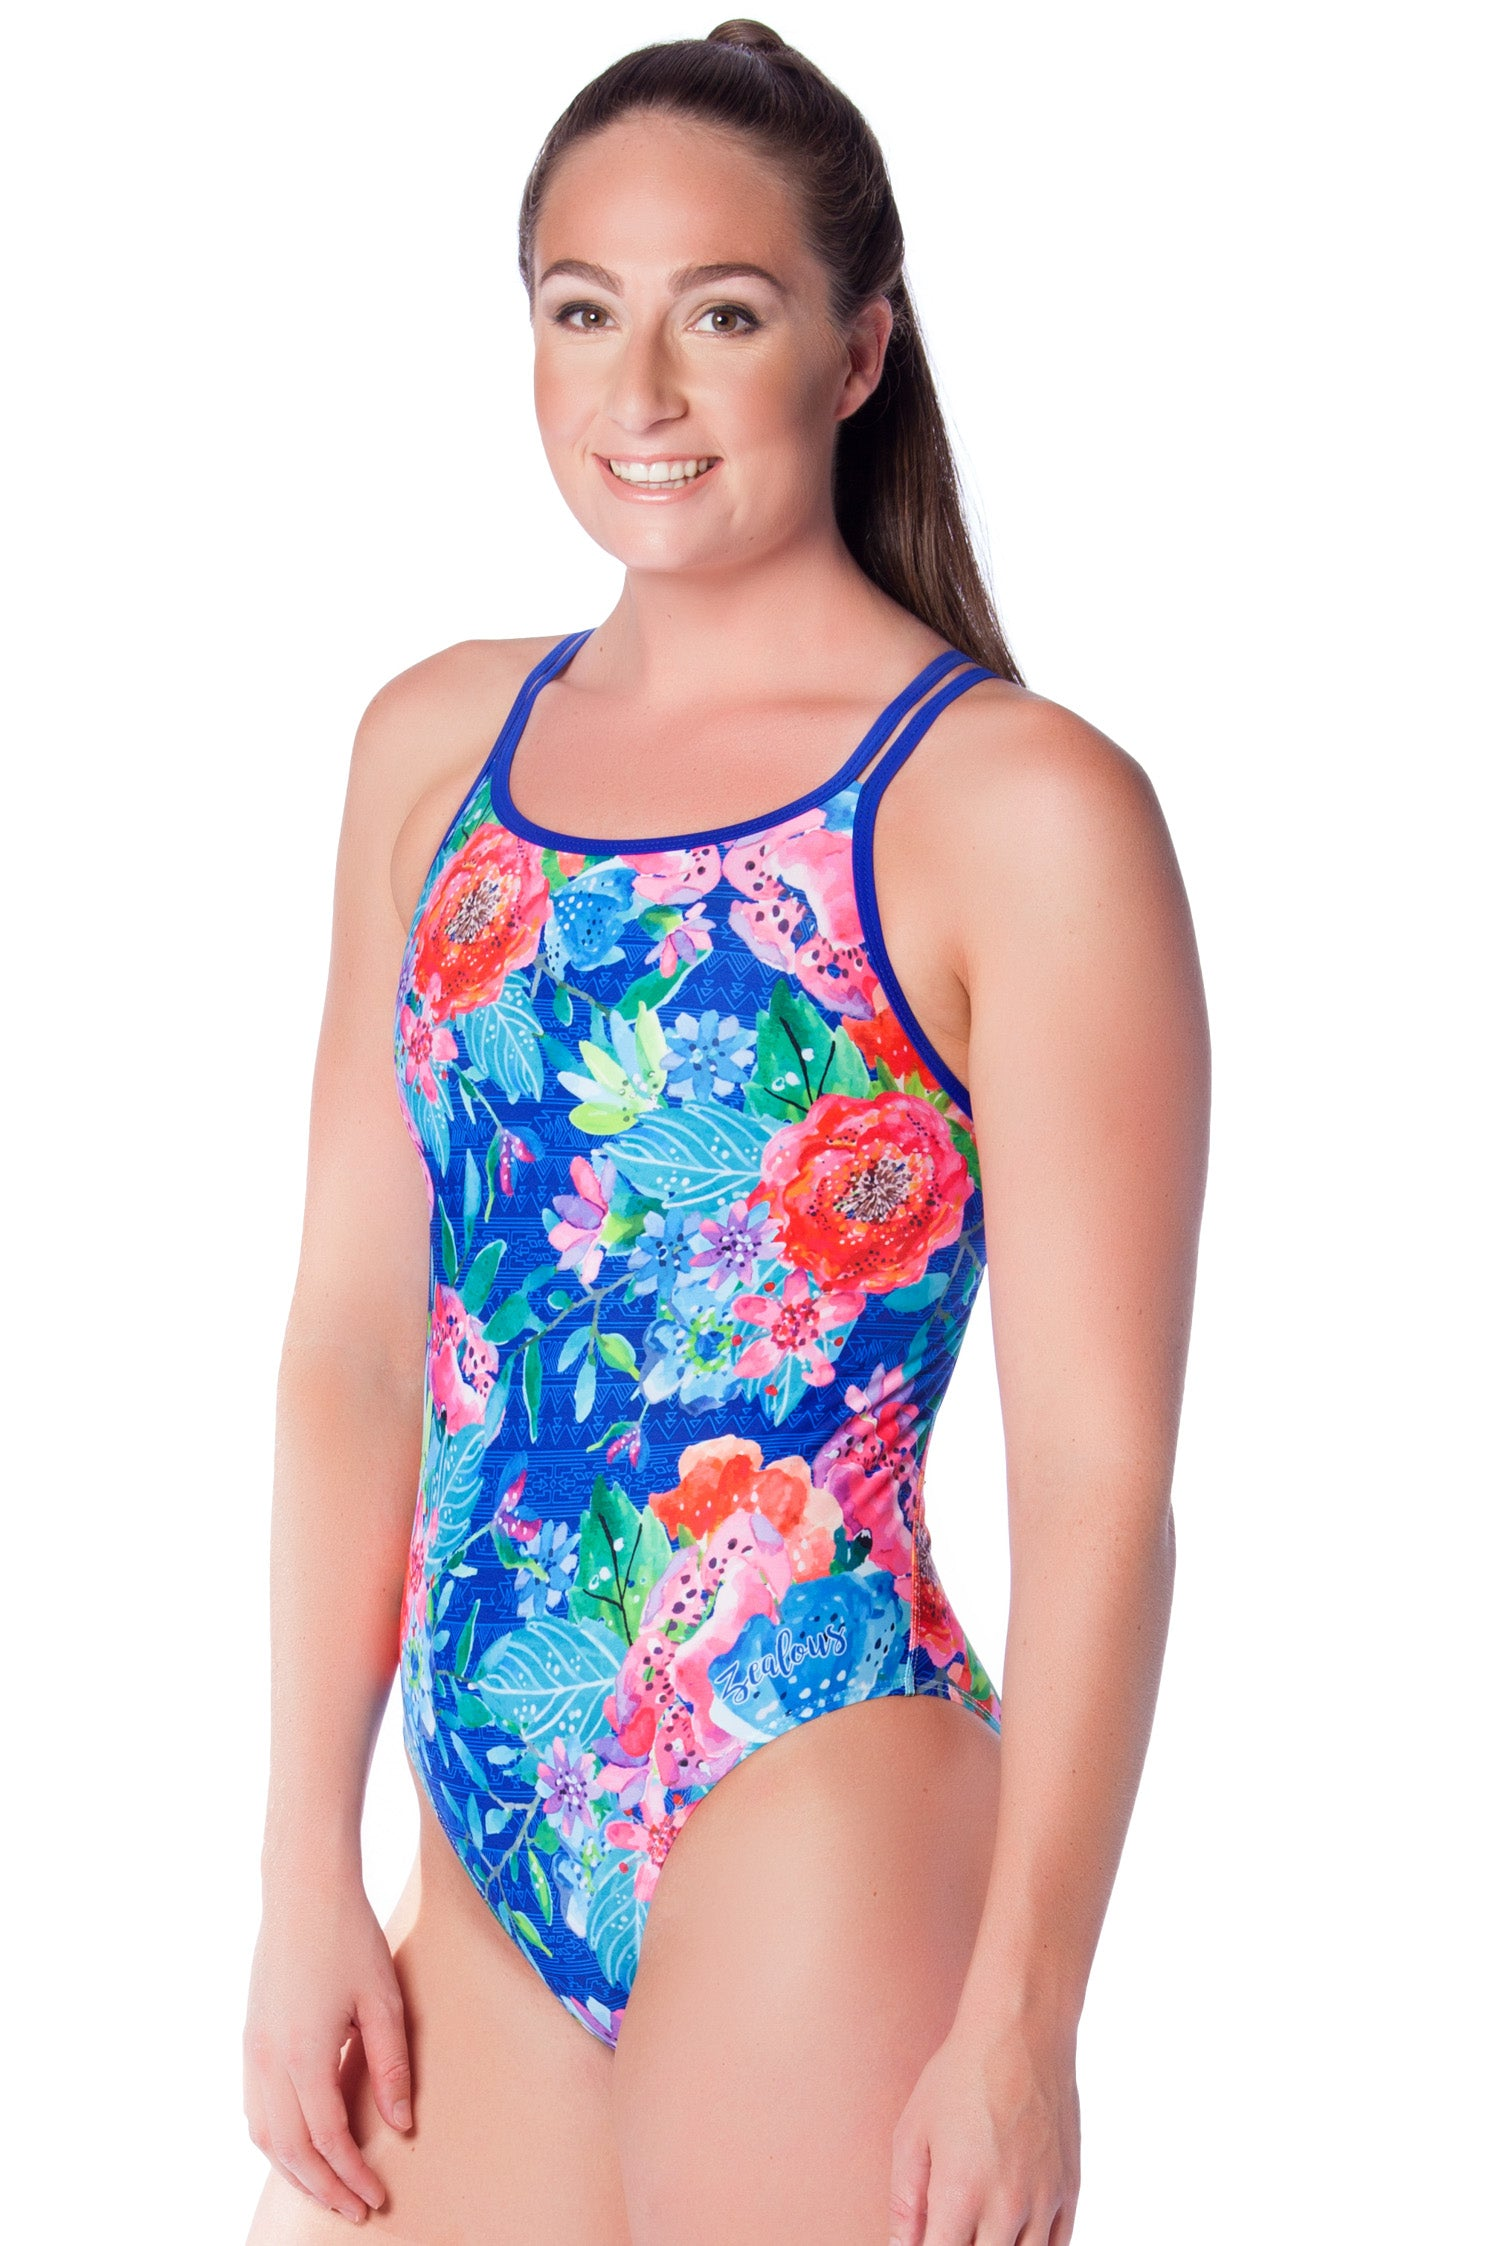 Miss Nevada Ladies Cross Back - Shop Zealous Training Swimwear